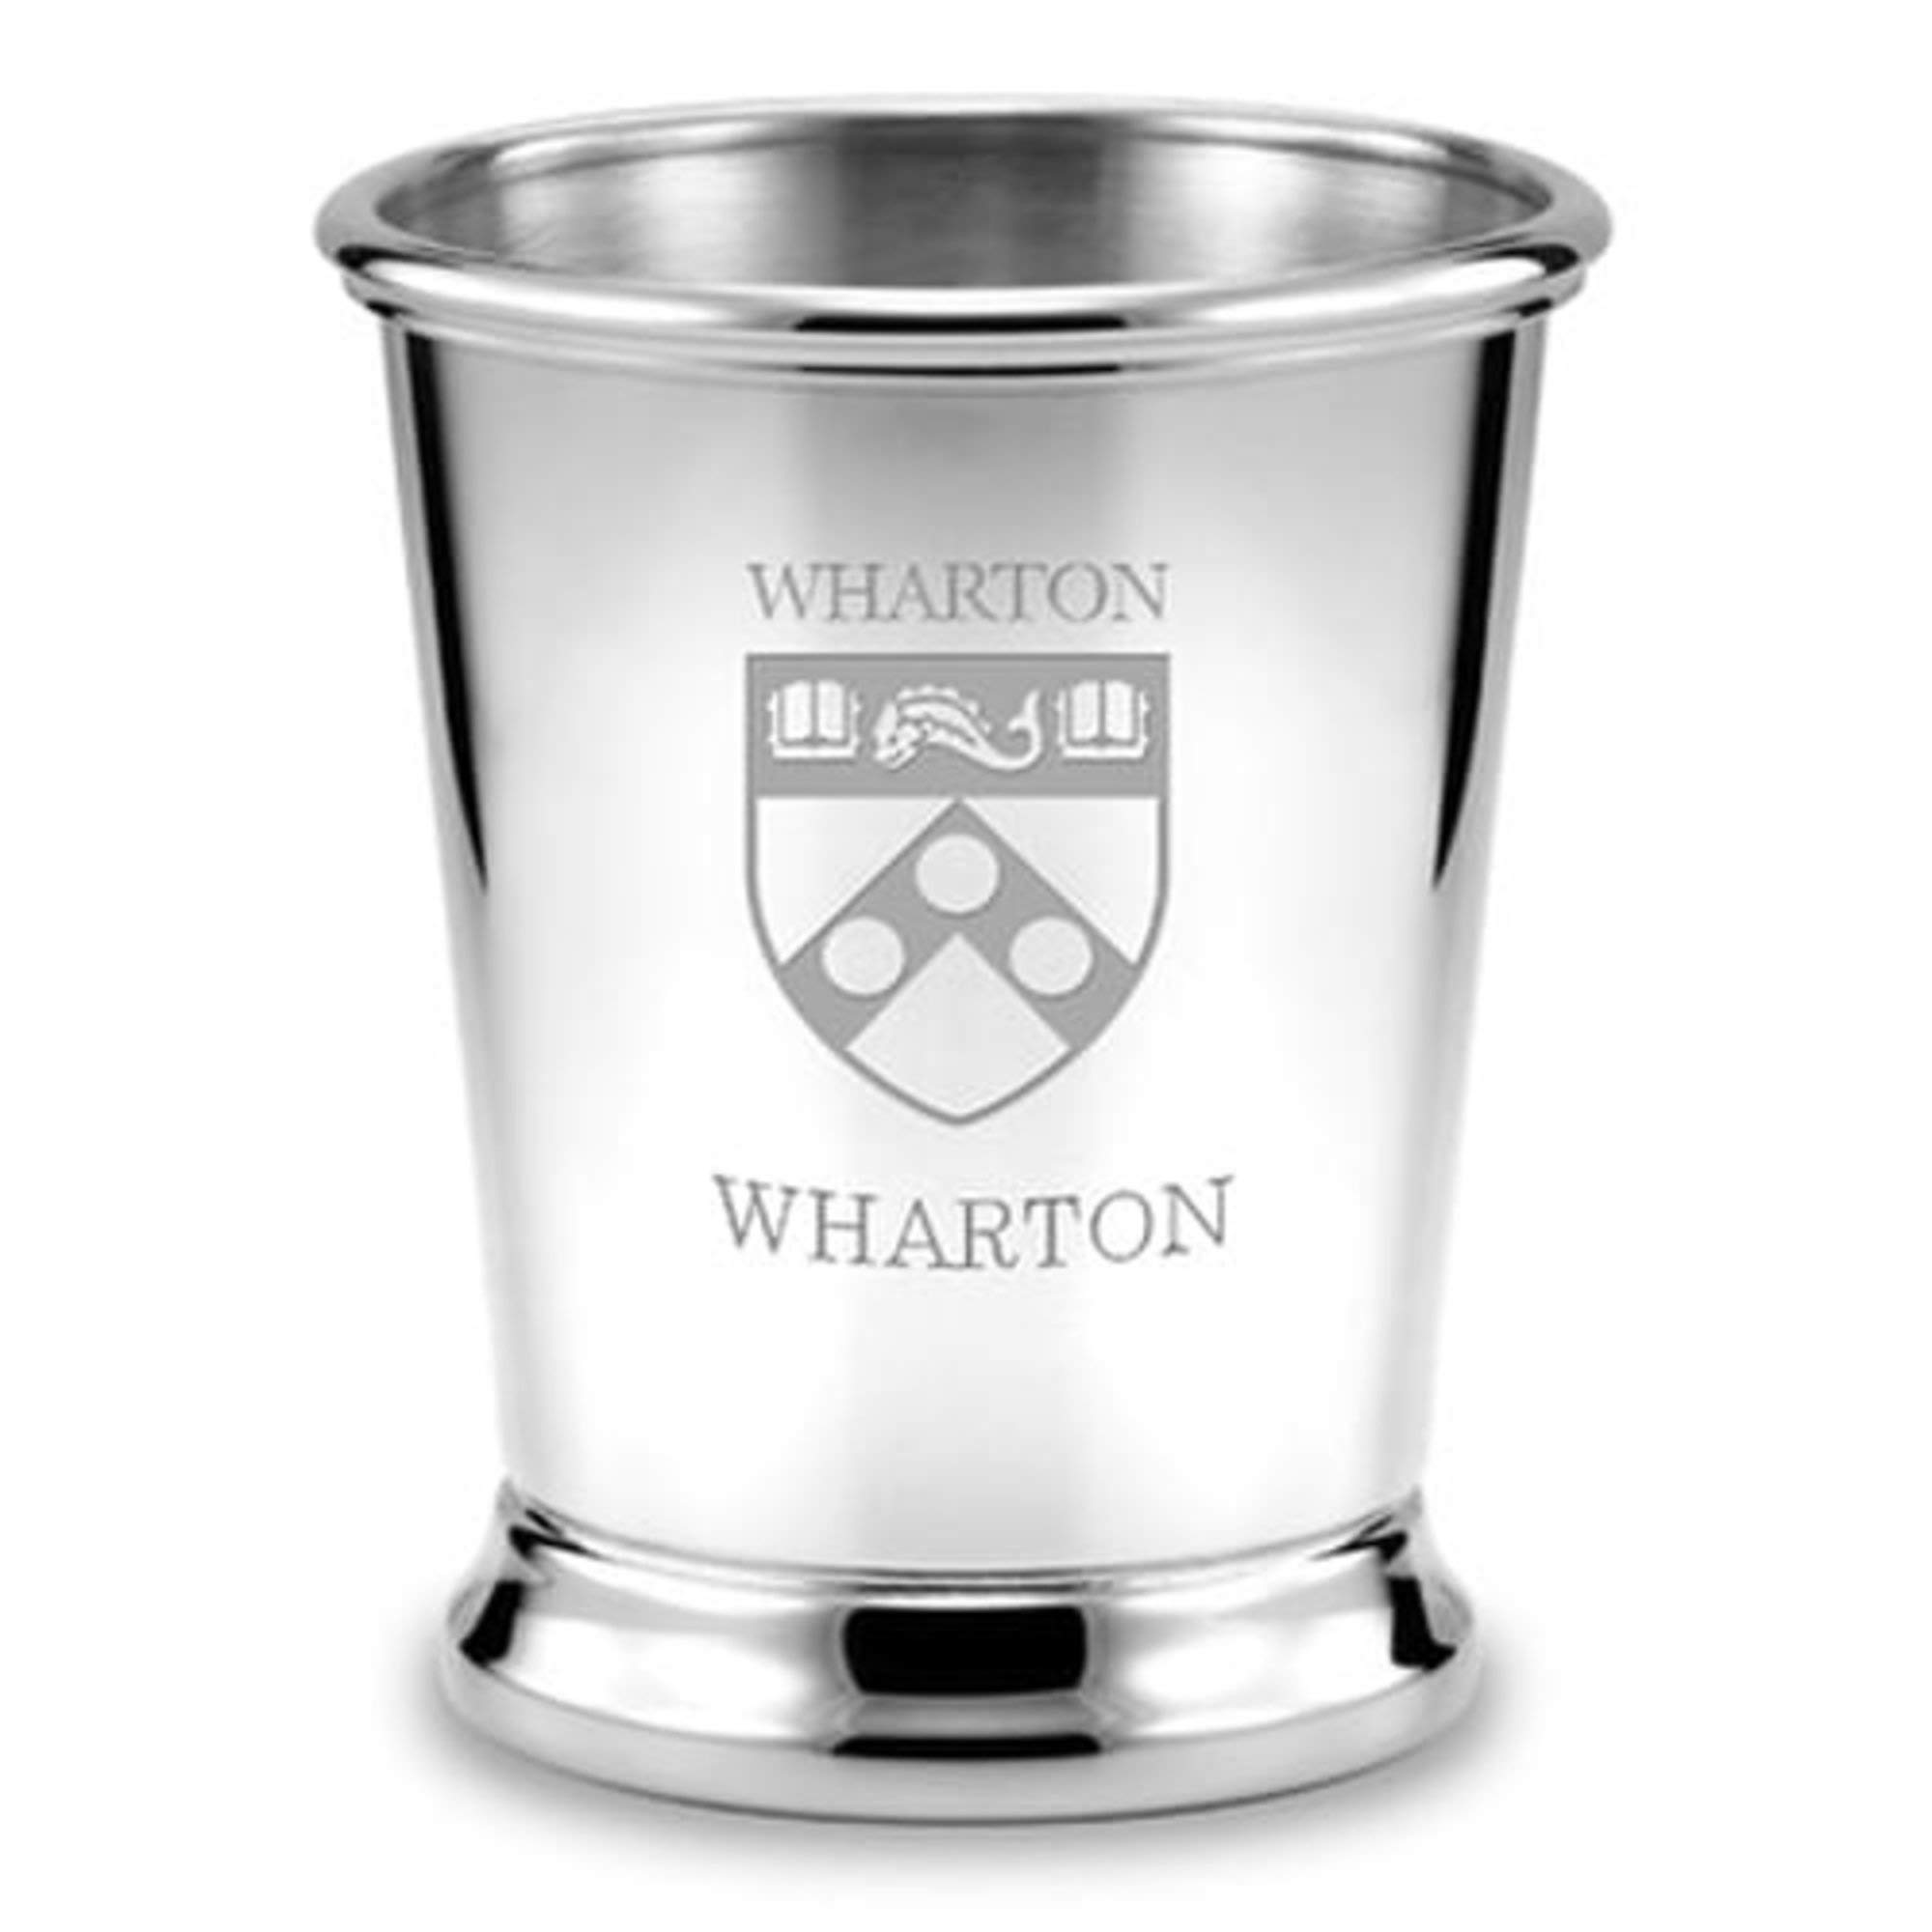 M. LA HART Wharton Pewter Julep Cup